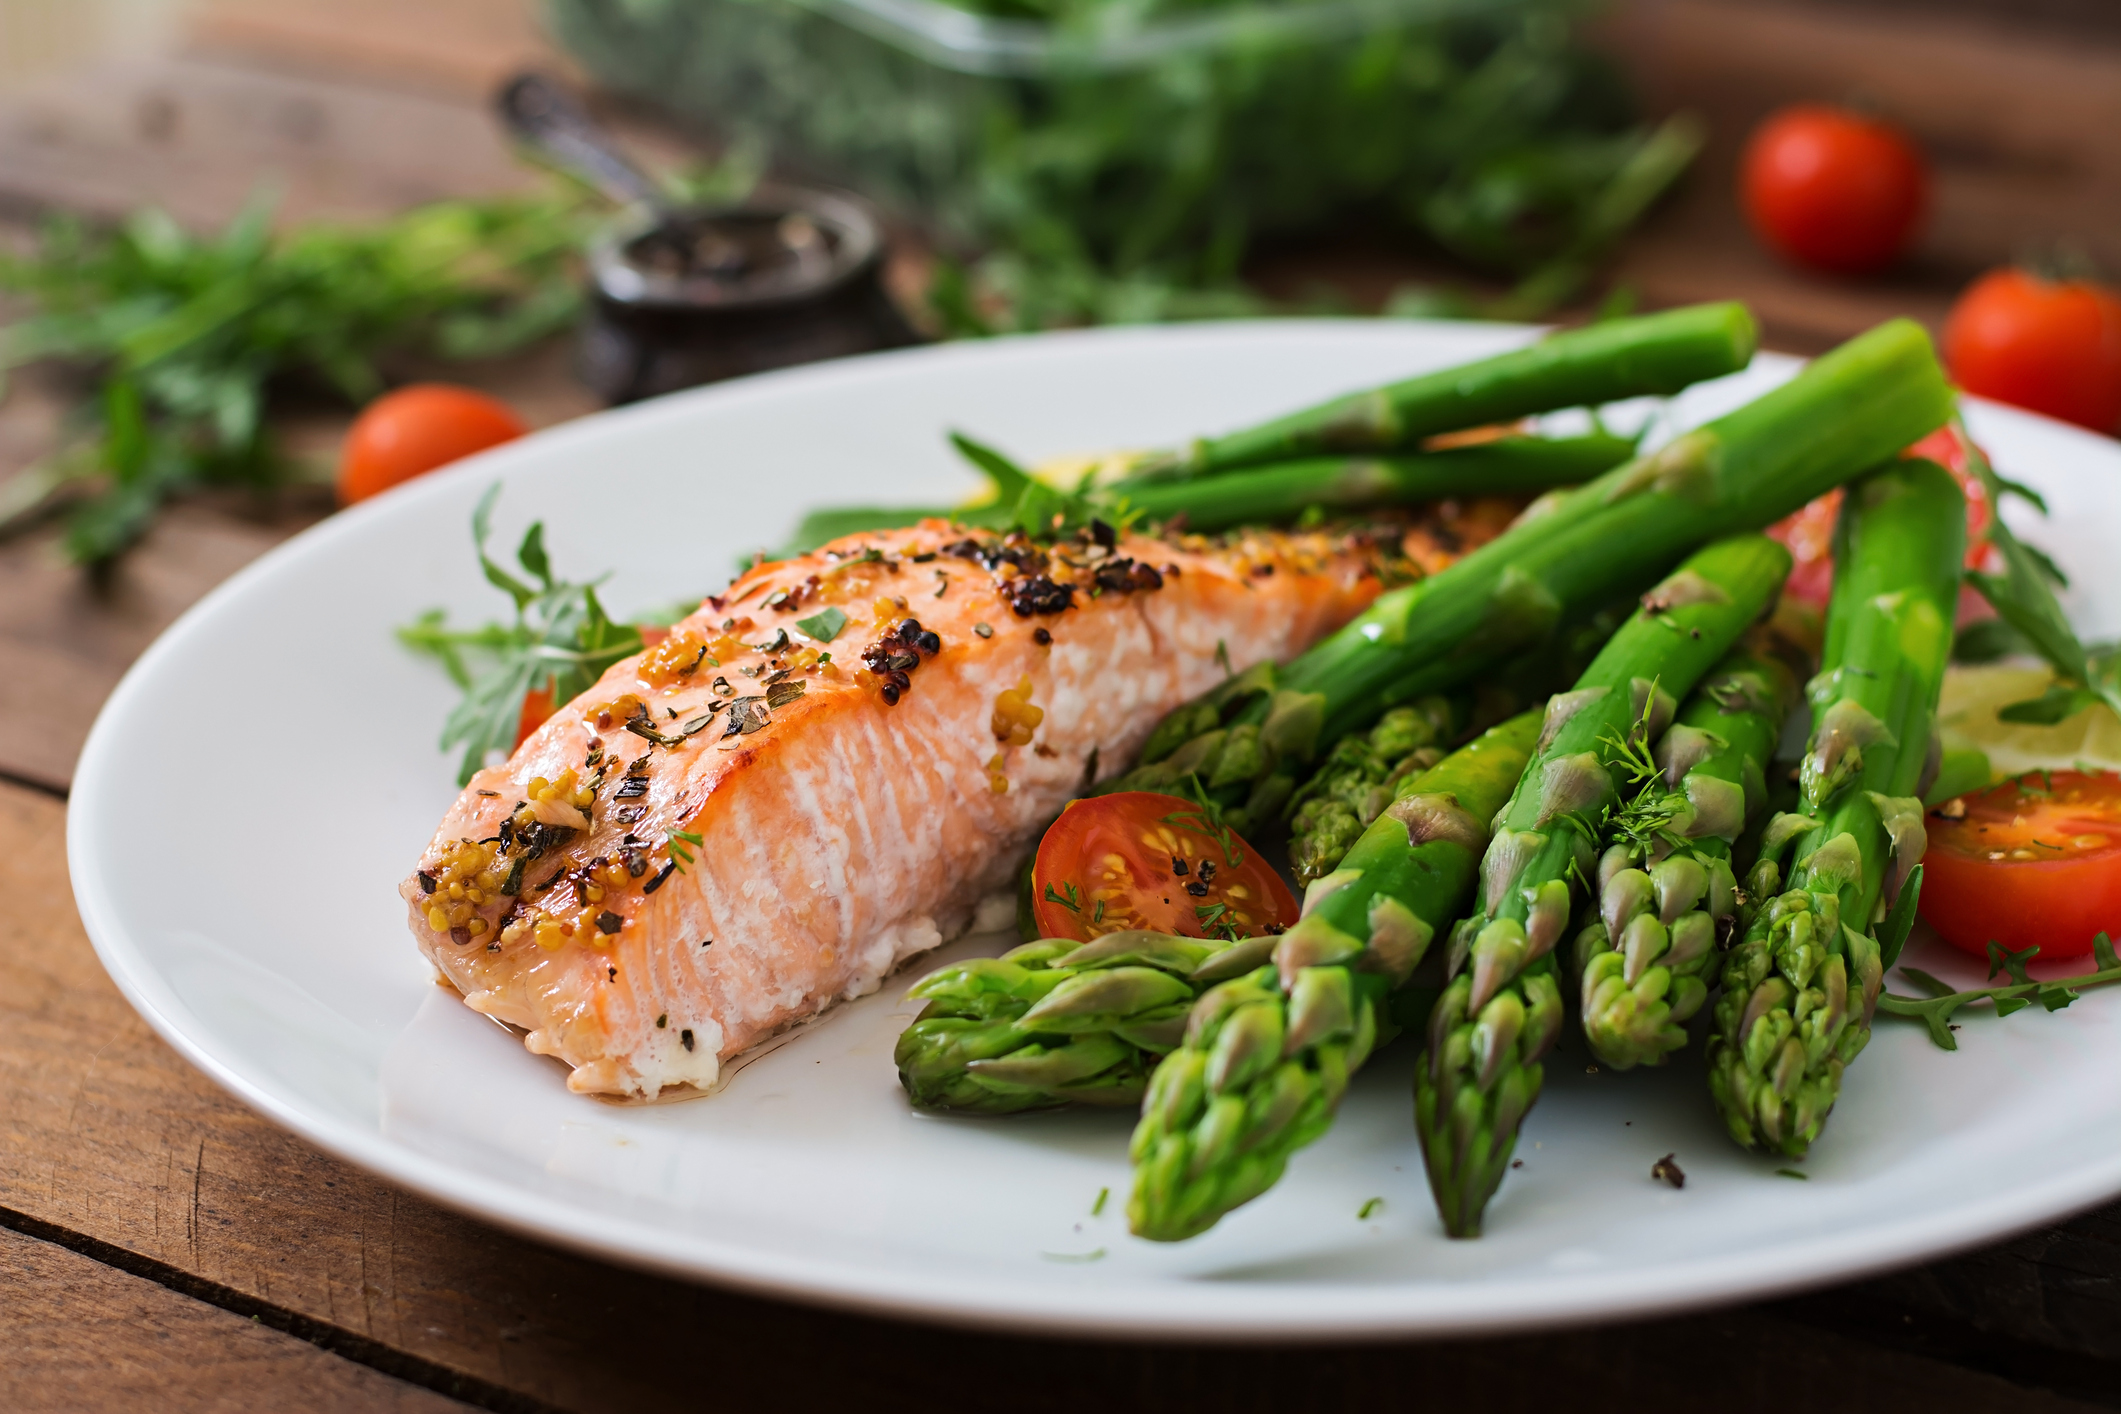 Magnesium-rich foods like salmon can ward off sickness image: elena_danileiko